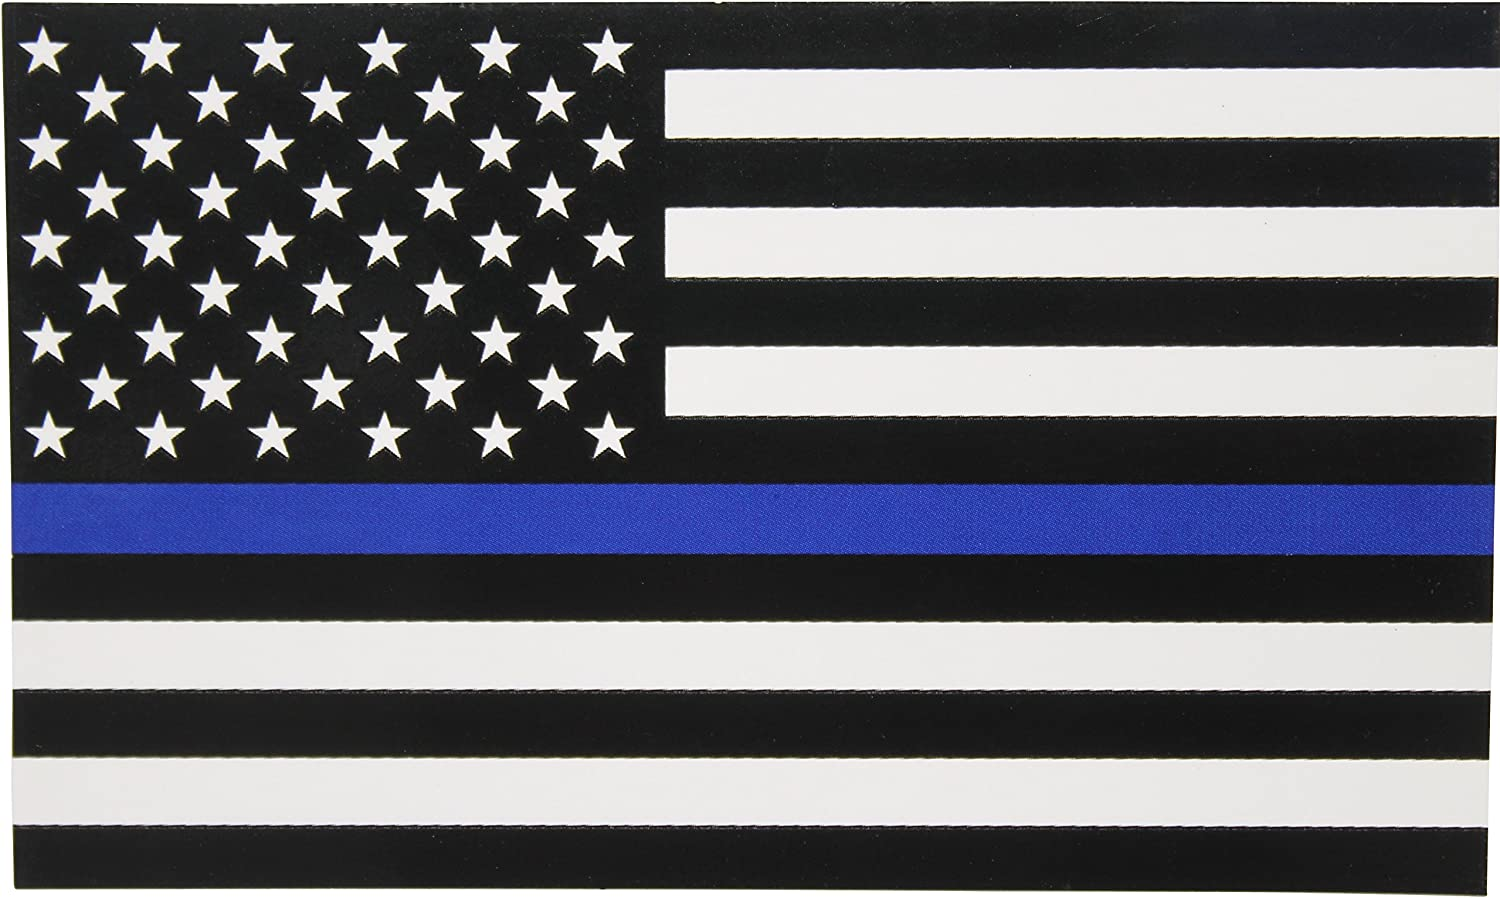 Thin Blue Line Flag Decal - 3x5 in. Black White and Blue American Flag Sticker for Cars and Trucks - in Support of Police and Law Enforcement Officers (1)